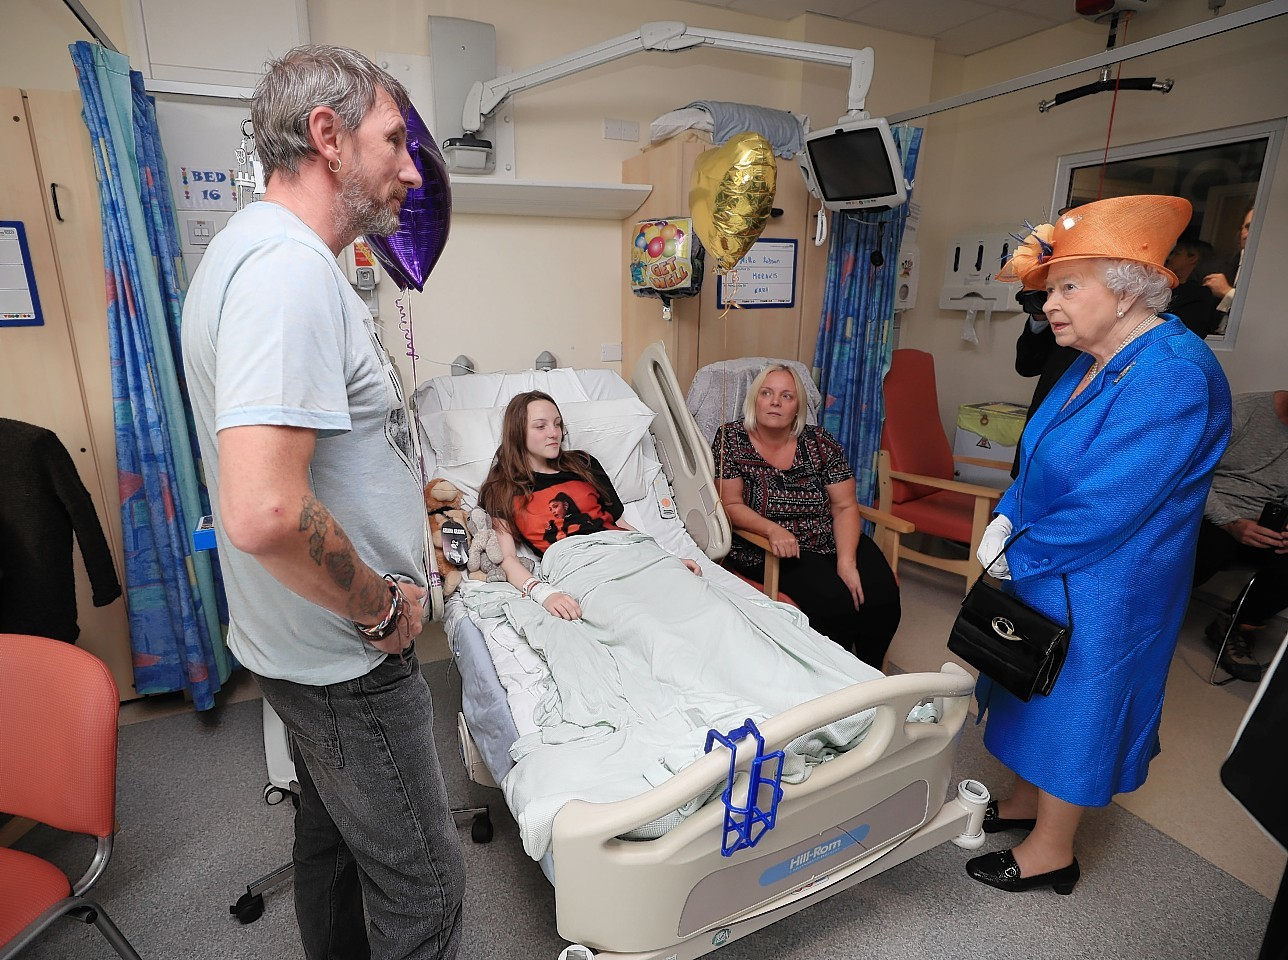 Queen Elizabeth II speaks to Millie Robson, 15, from Co Durham, and her mother, Marie and Father David during a visit to the Royal Manchester Children's Hospita